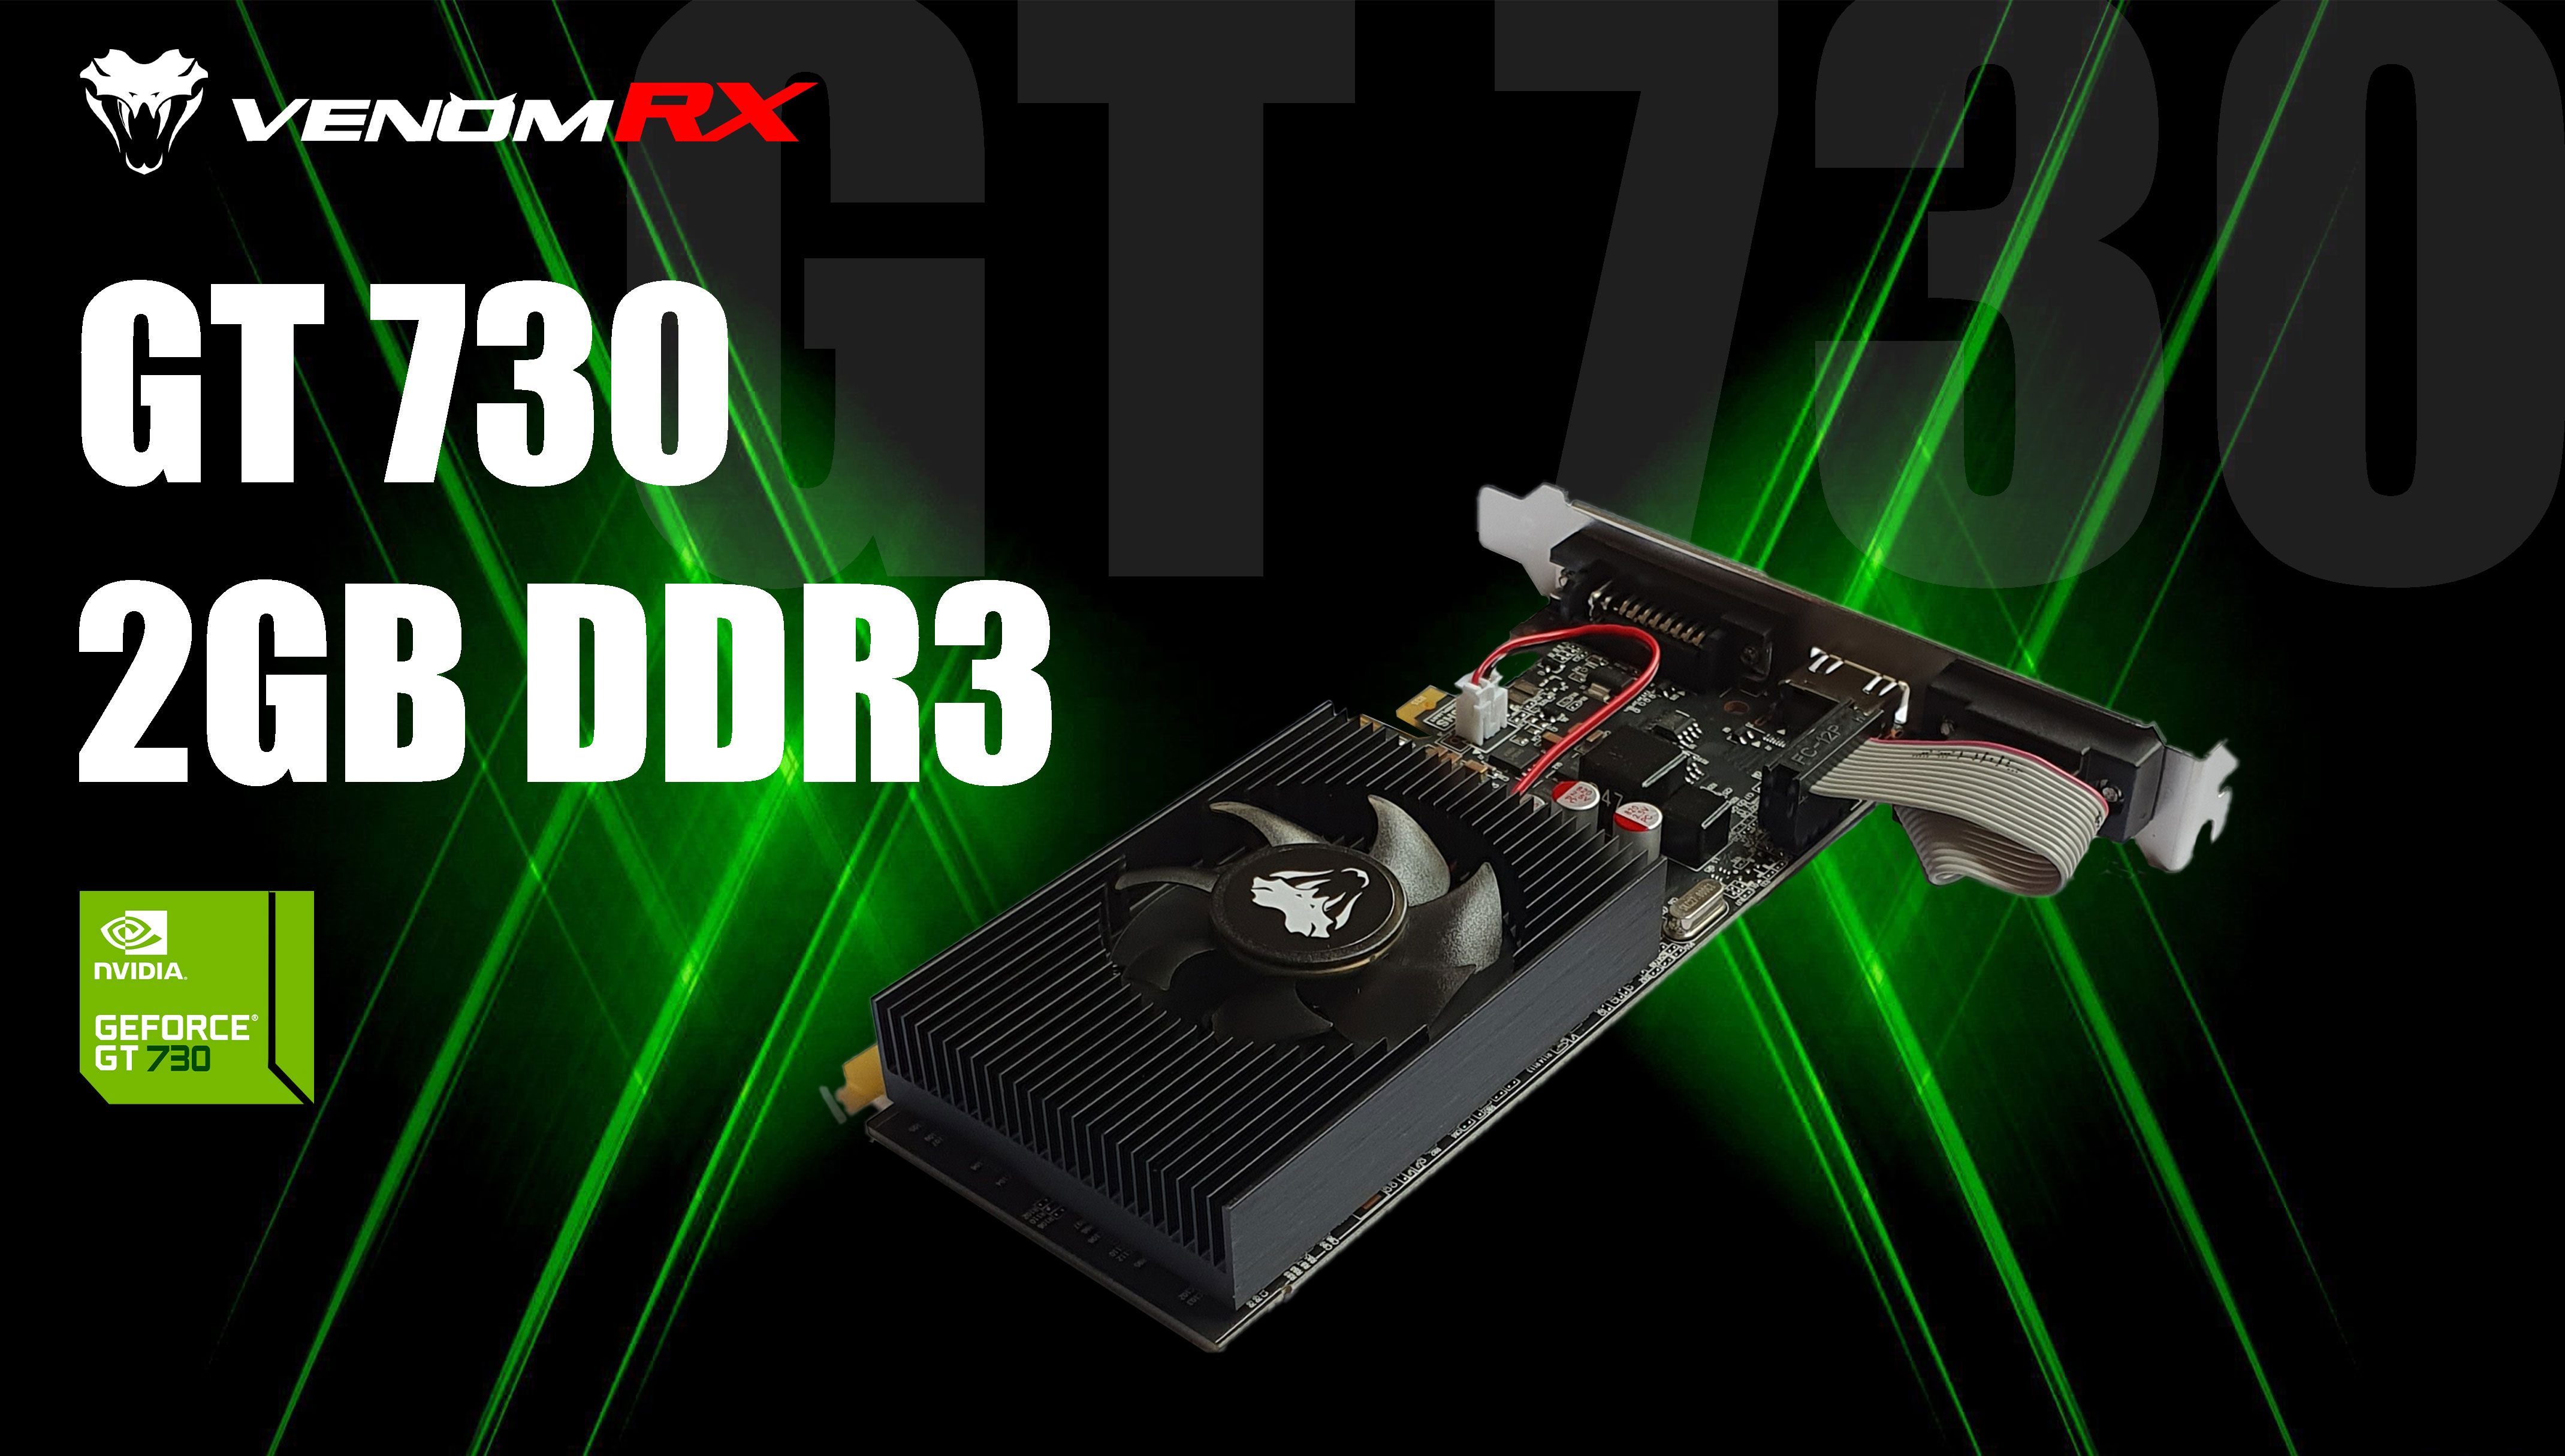 GT730-2GB-DDR3-COVER-1